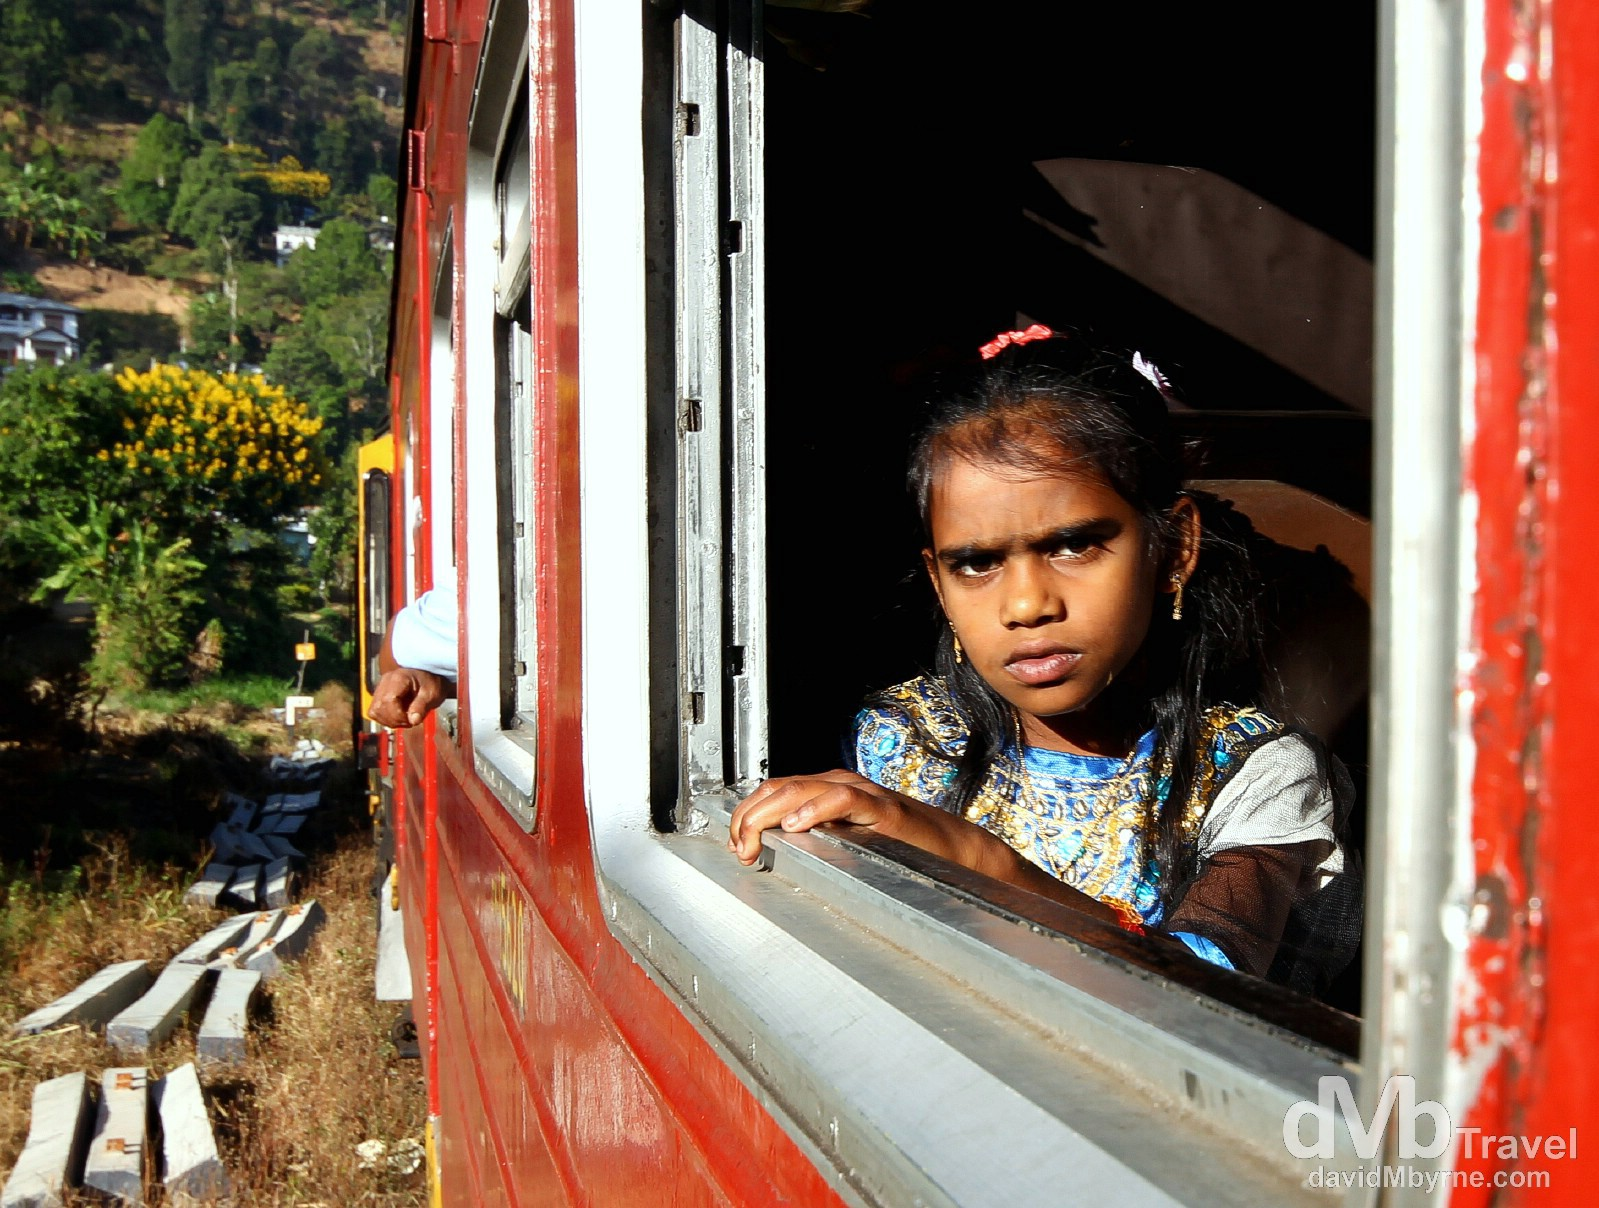 On the Badulla to Colombo train in central Sri Lanka. September 5th 2012.